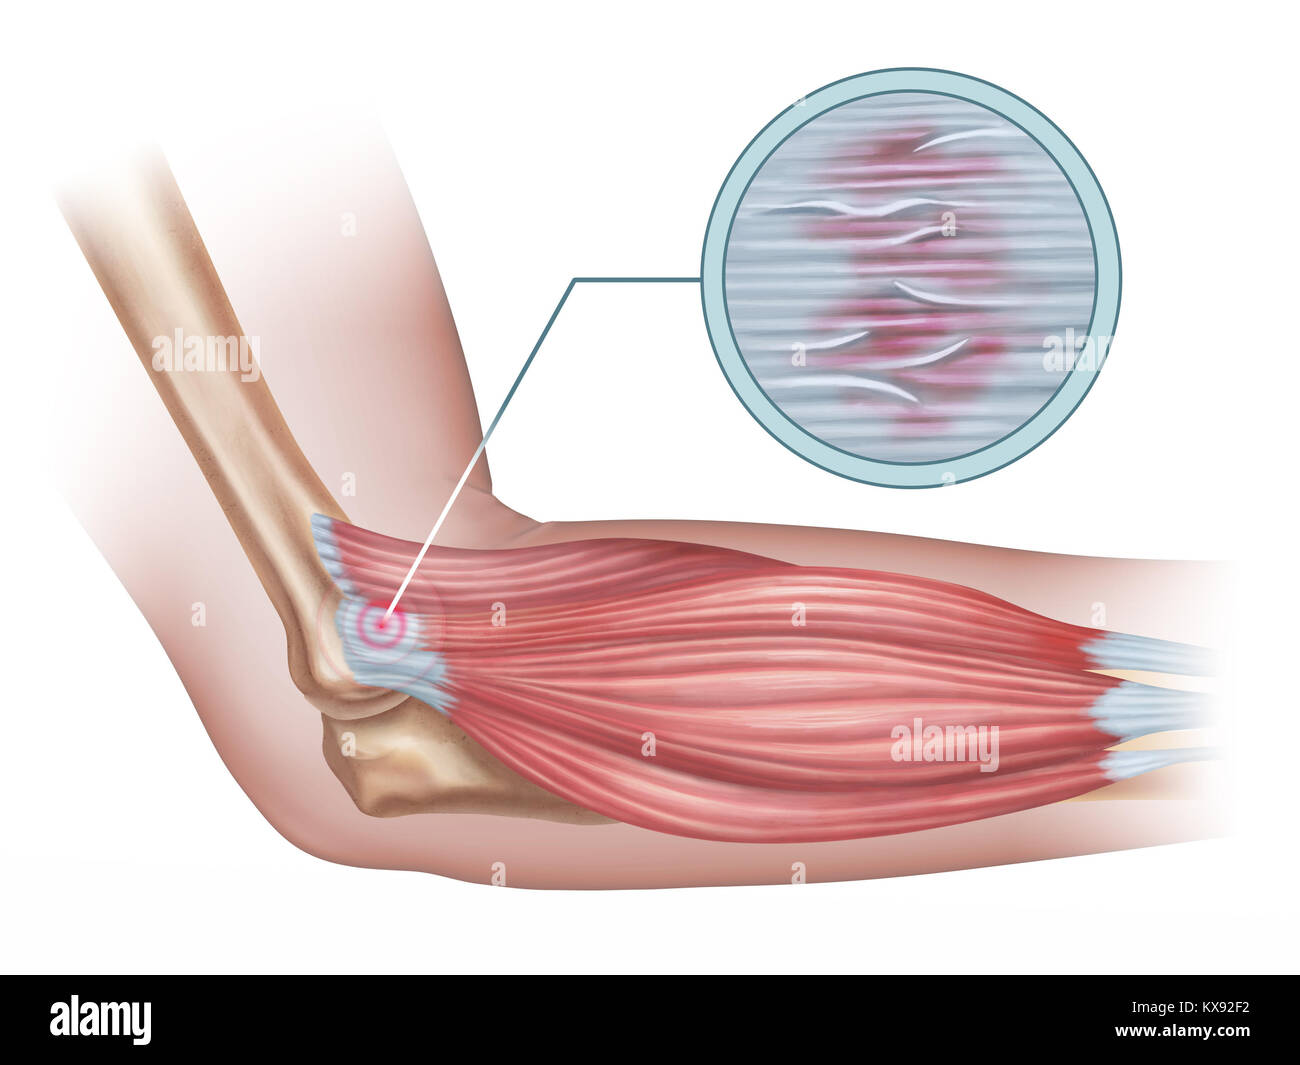 Tennis elbow diagram showing a detail of the damaged tendon tissue ...